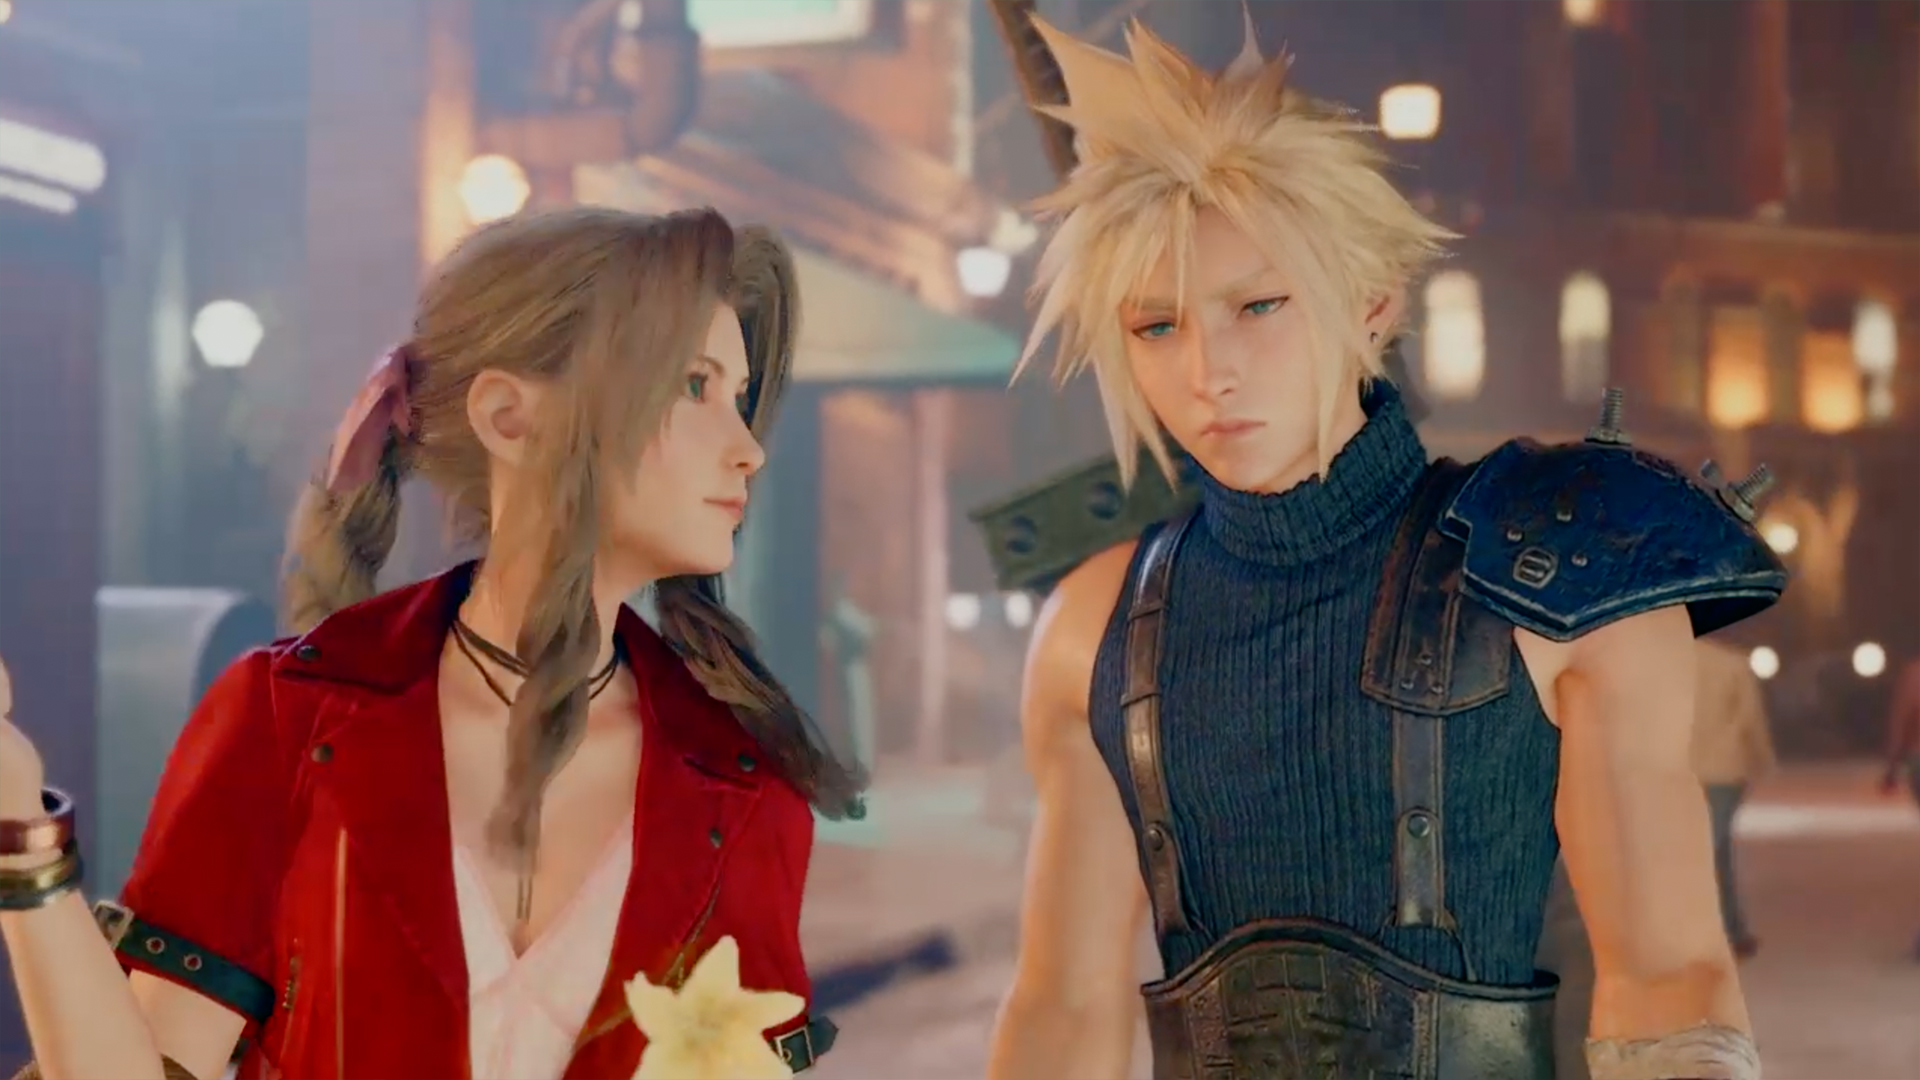 10 Games Like Final Fantasy You Can Play To Shorten The Wait Until Final Fantasy 7 Remake Gamesradar